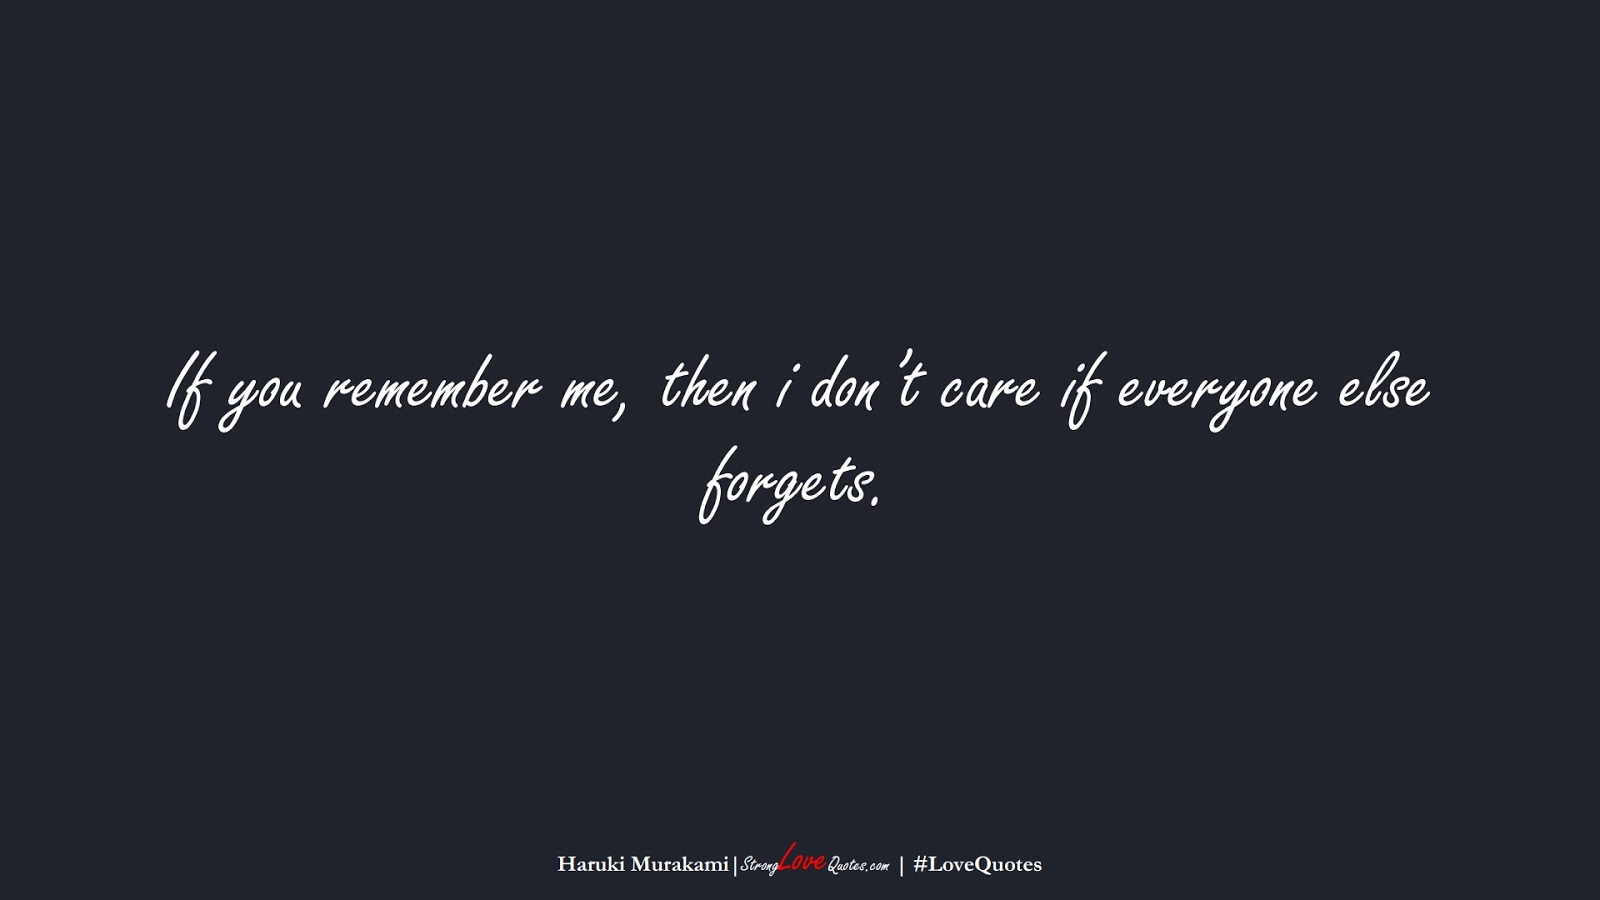 If you remember me, then i don't care if everyone else forgets. (Haruki Murakami);  #LoveQuotes